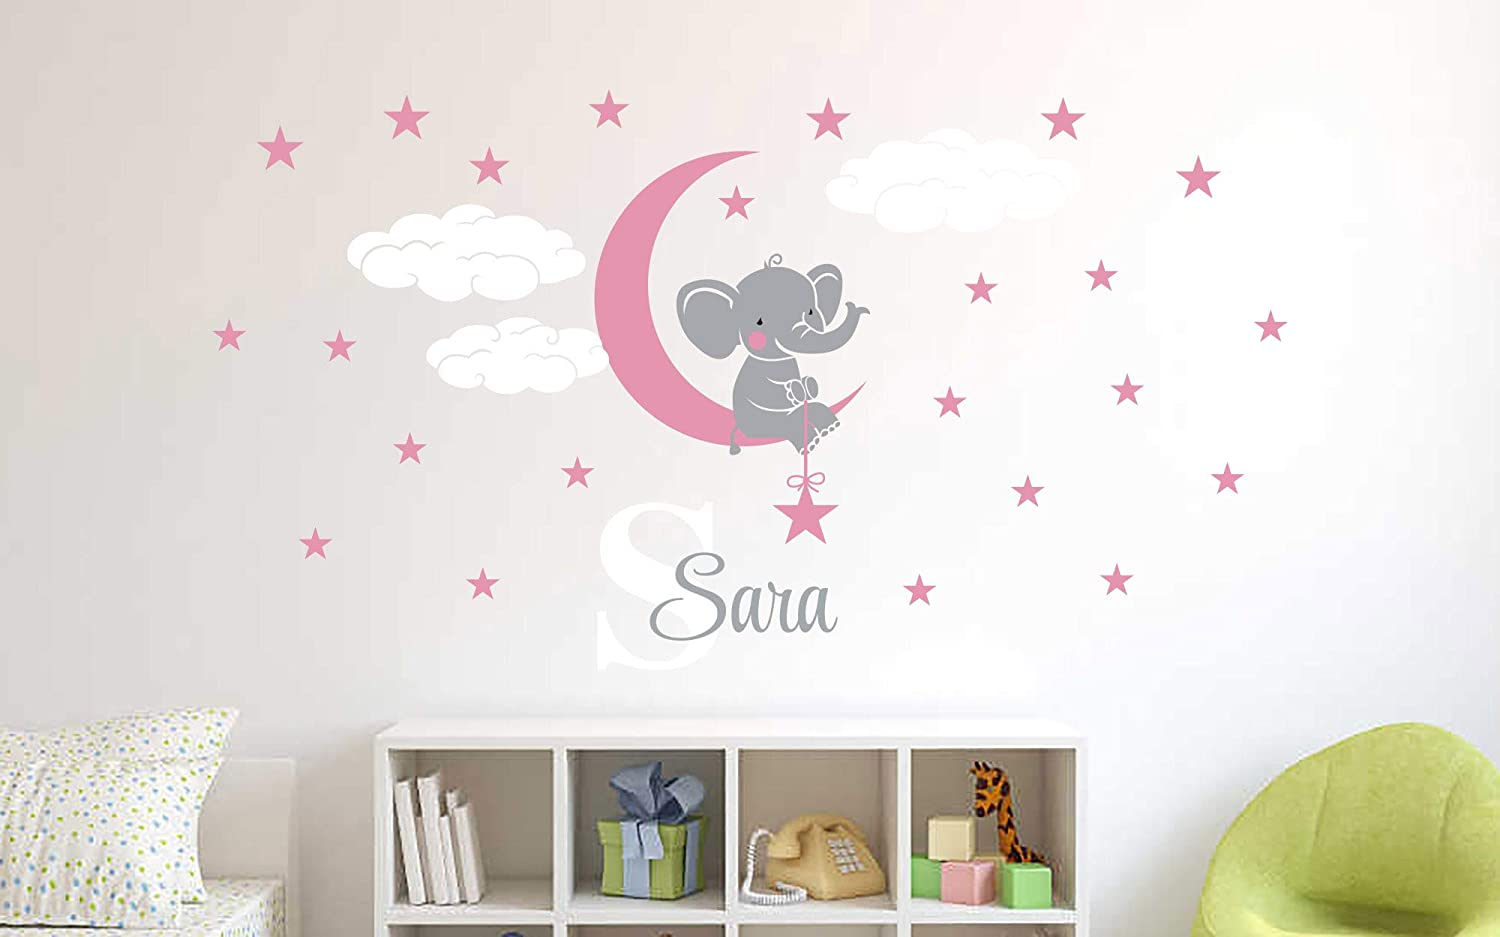 "Custom Name & Initial Elephant Stars and Clouds - Prime Series - Baby Girl - Nursery Wall Decal for Baby Room Decorations - Mural Wall Decal Sticker for Home Children's Bedroom (Wide 34""x18"" Height)"